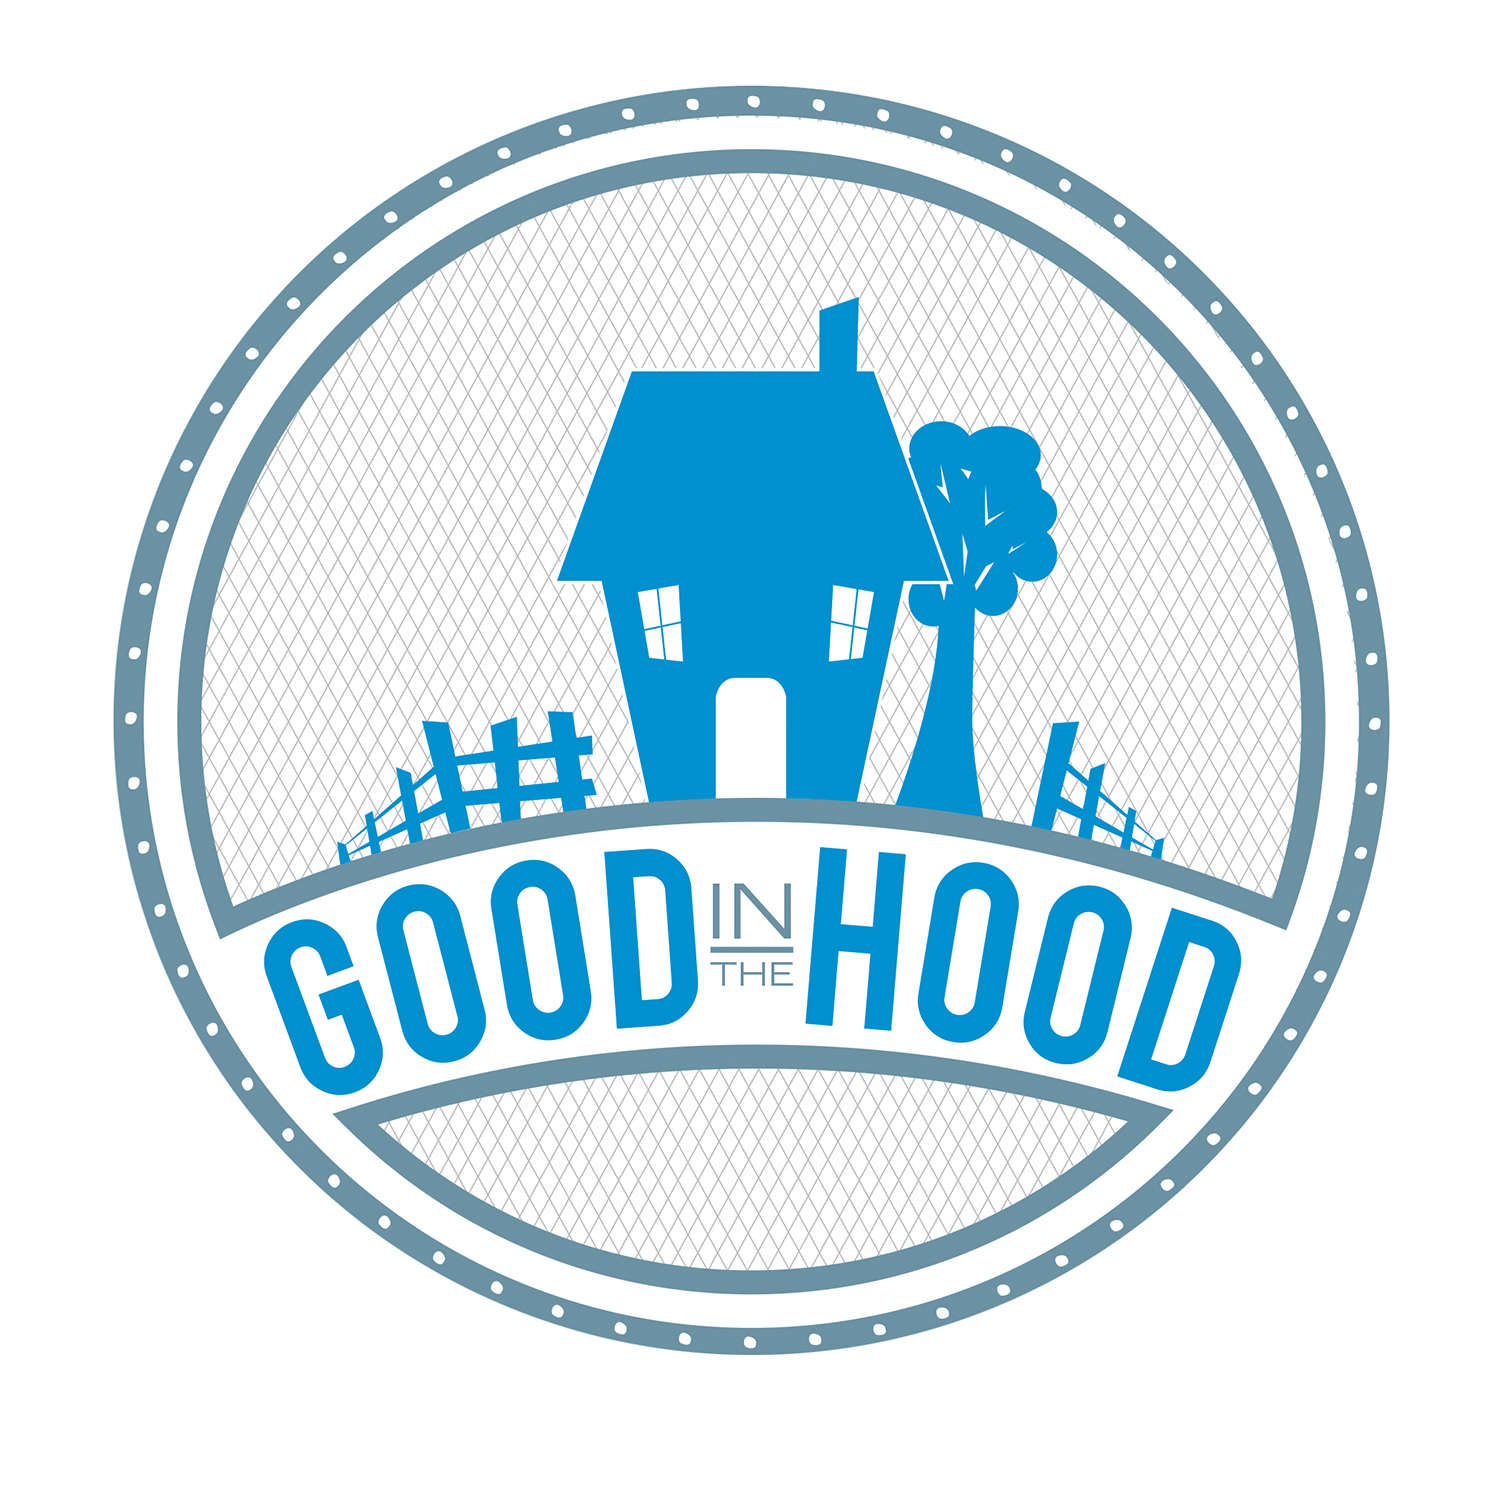 Good in the Hood is a local nonprofit organization that unites neighborhoods through service. I redesigned their logo and whole brand identity so they can be seen as the professional/awesome organization they are. I also designed their website. Check it out! dogoodinthehood.com